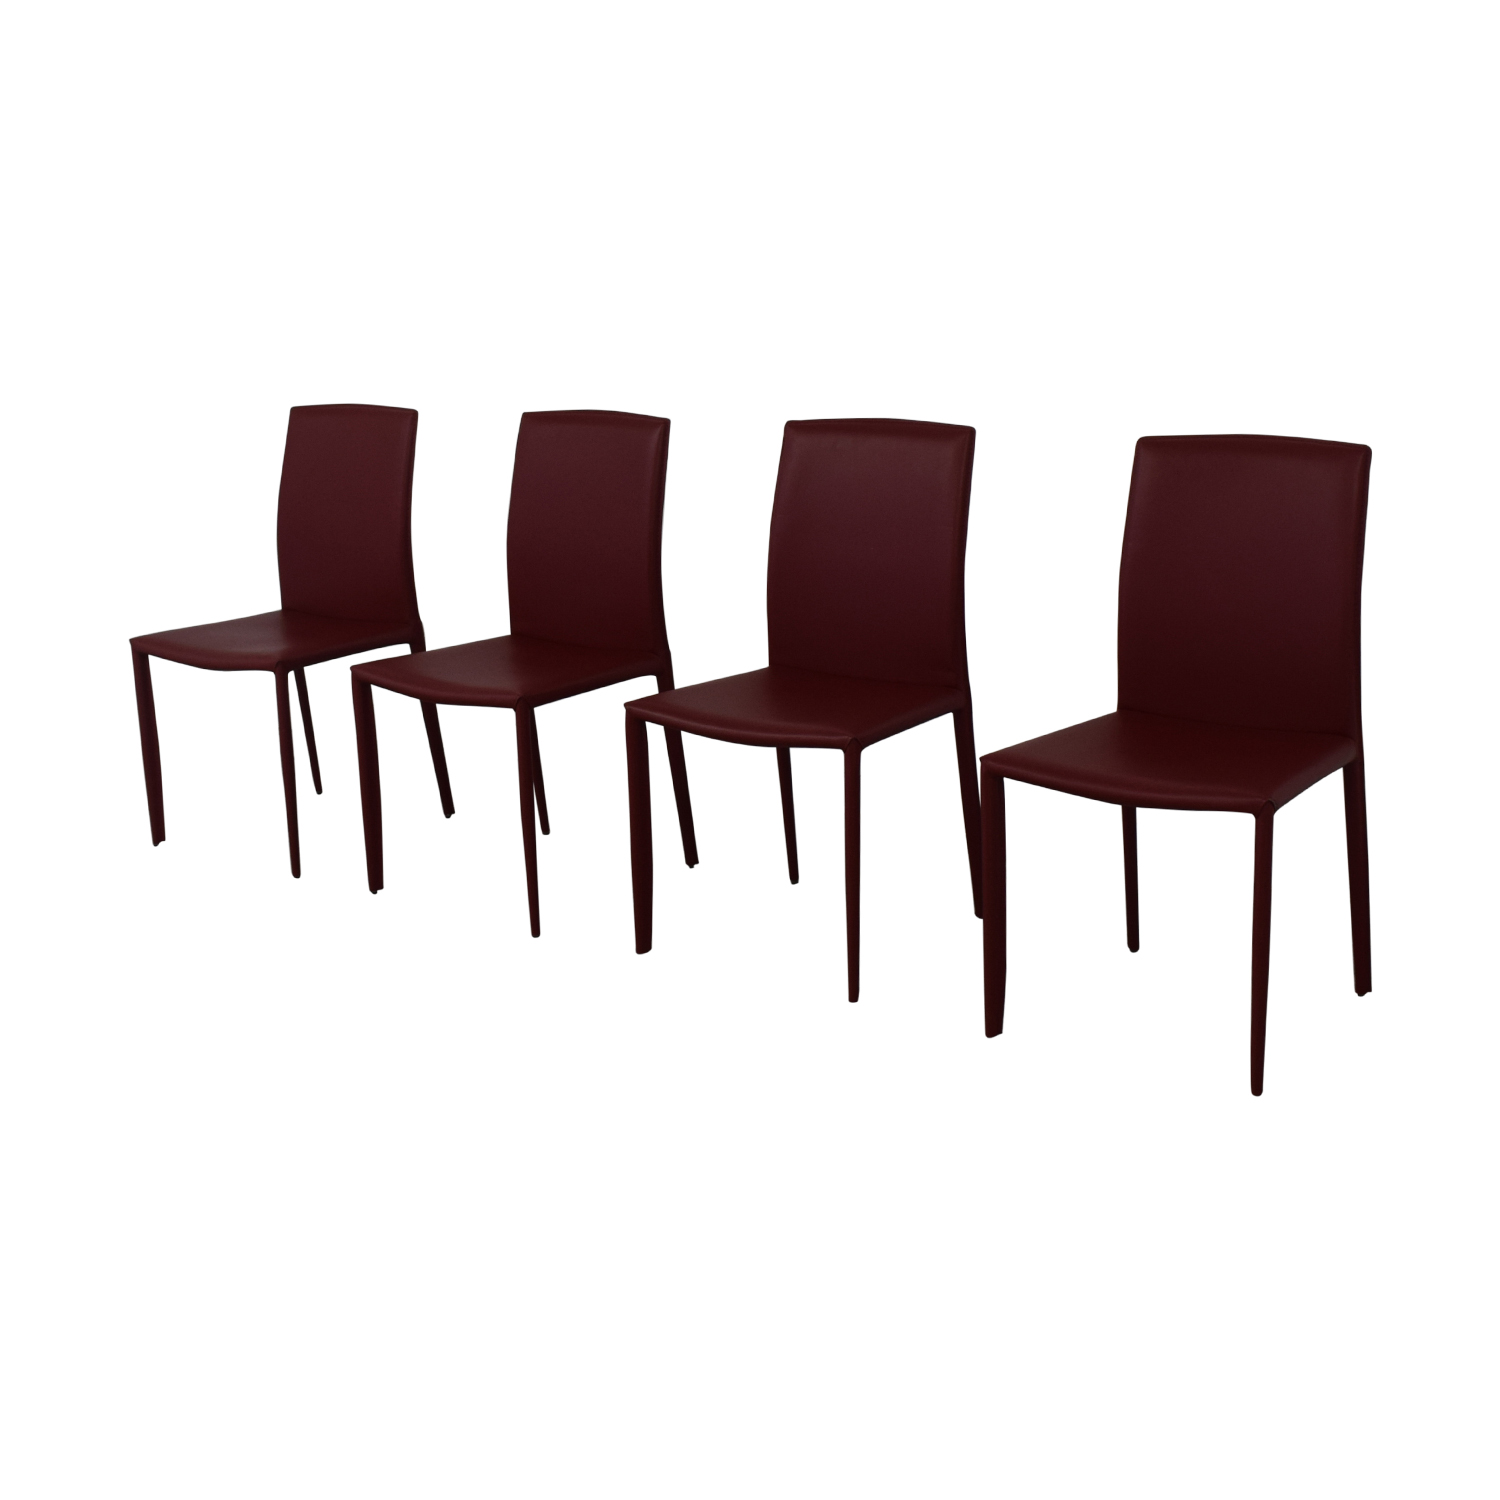 Modloft Dining Chairs / Chairs